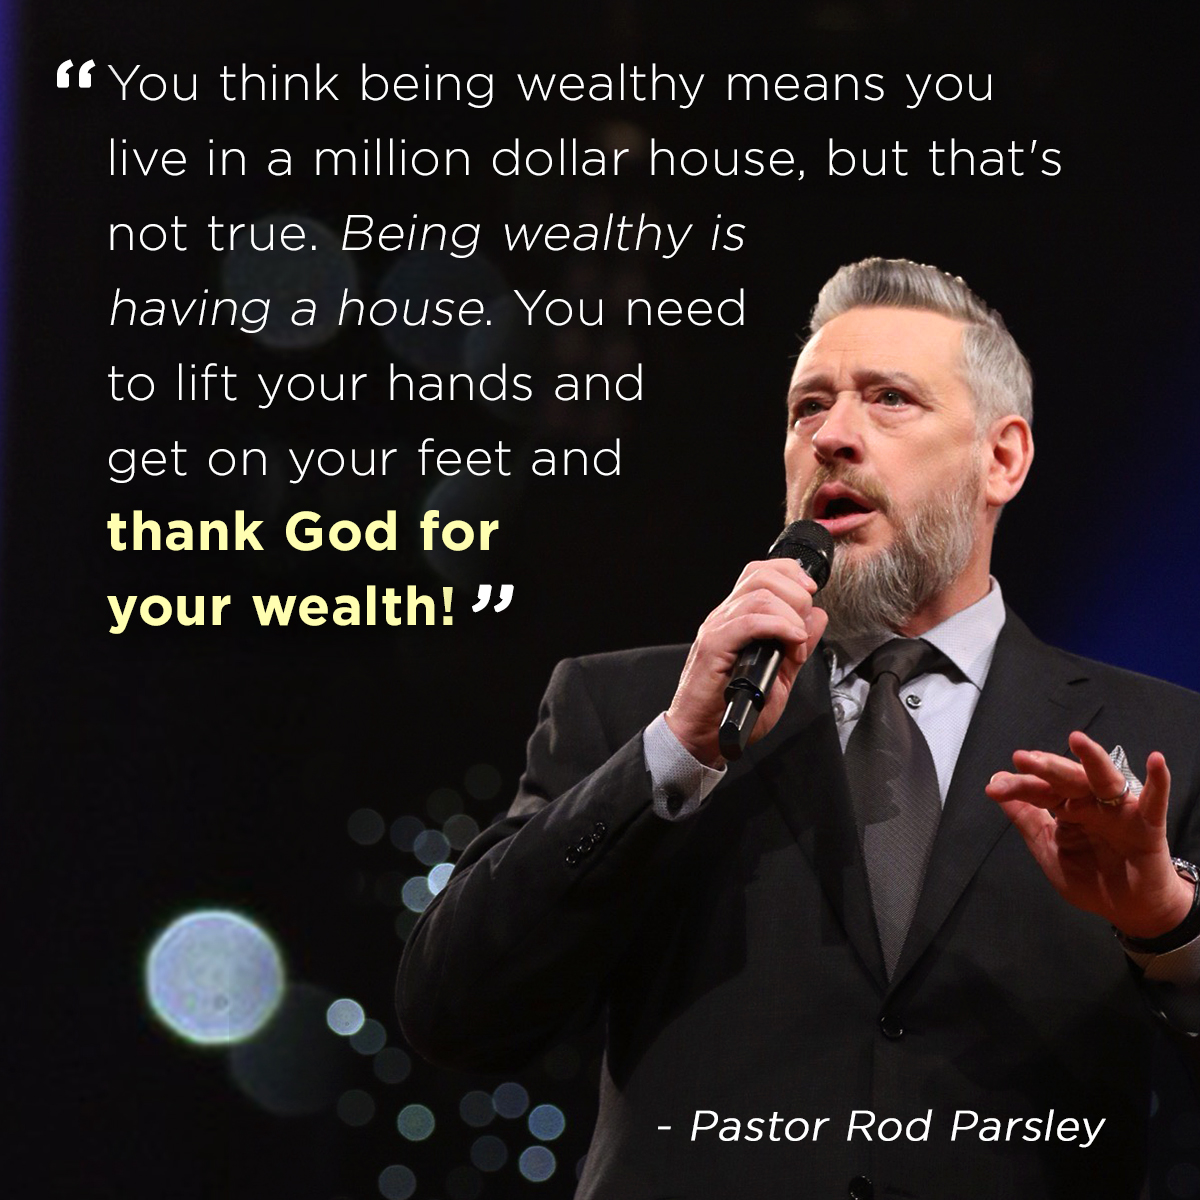 """You think being wealthy means you live in a million dollar house, but that' not true. Being wealthy is having a house. You need to lift your hands and get on your feet and thank God for your wealth"" – Pastor Rod Parsley"